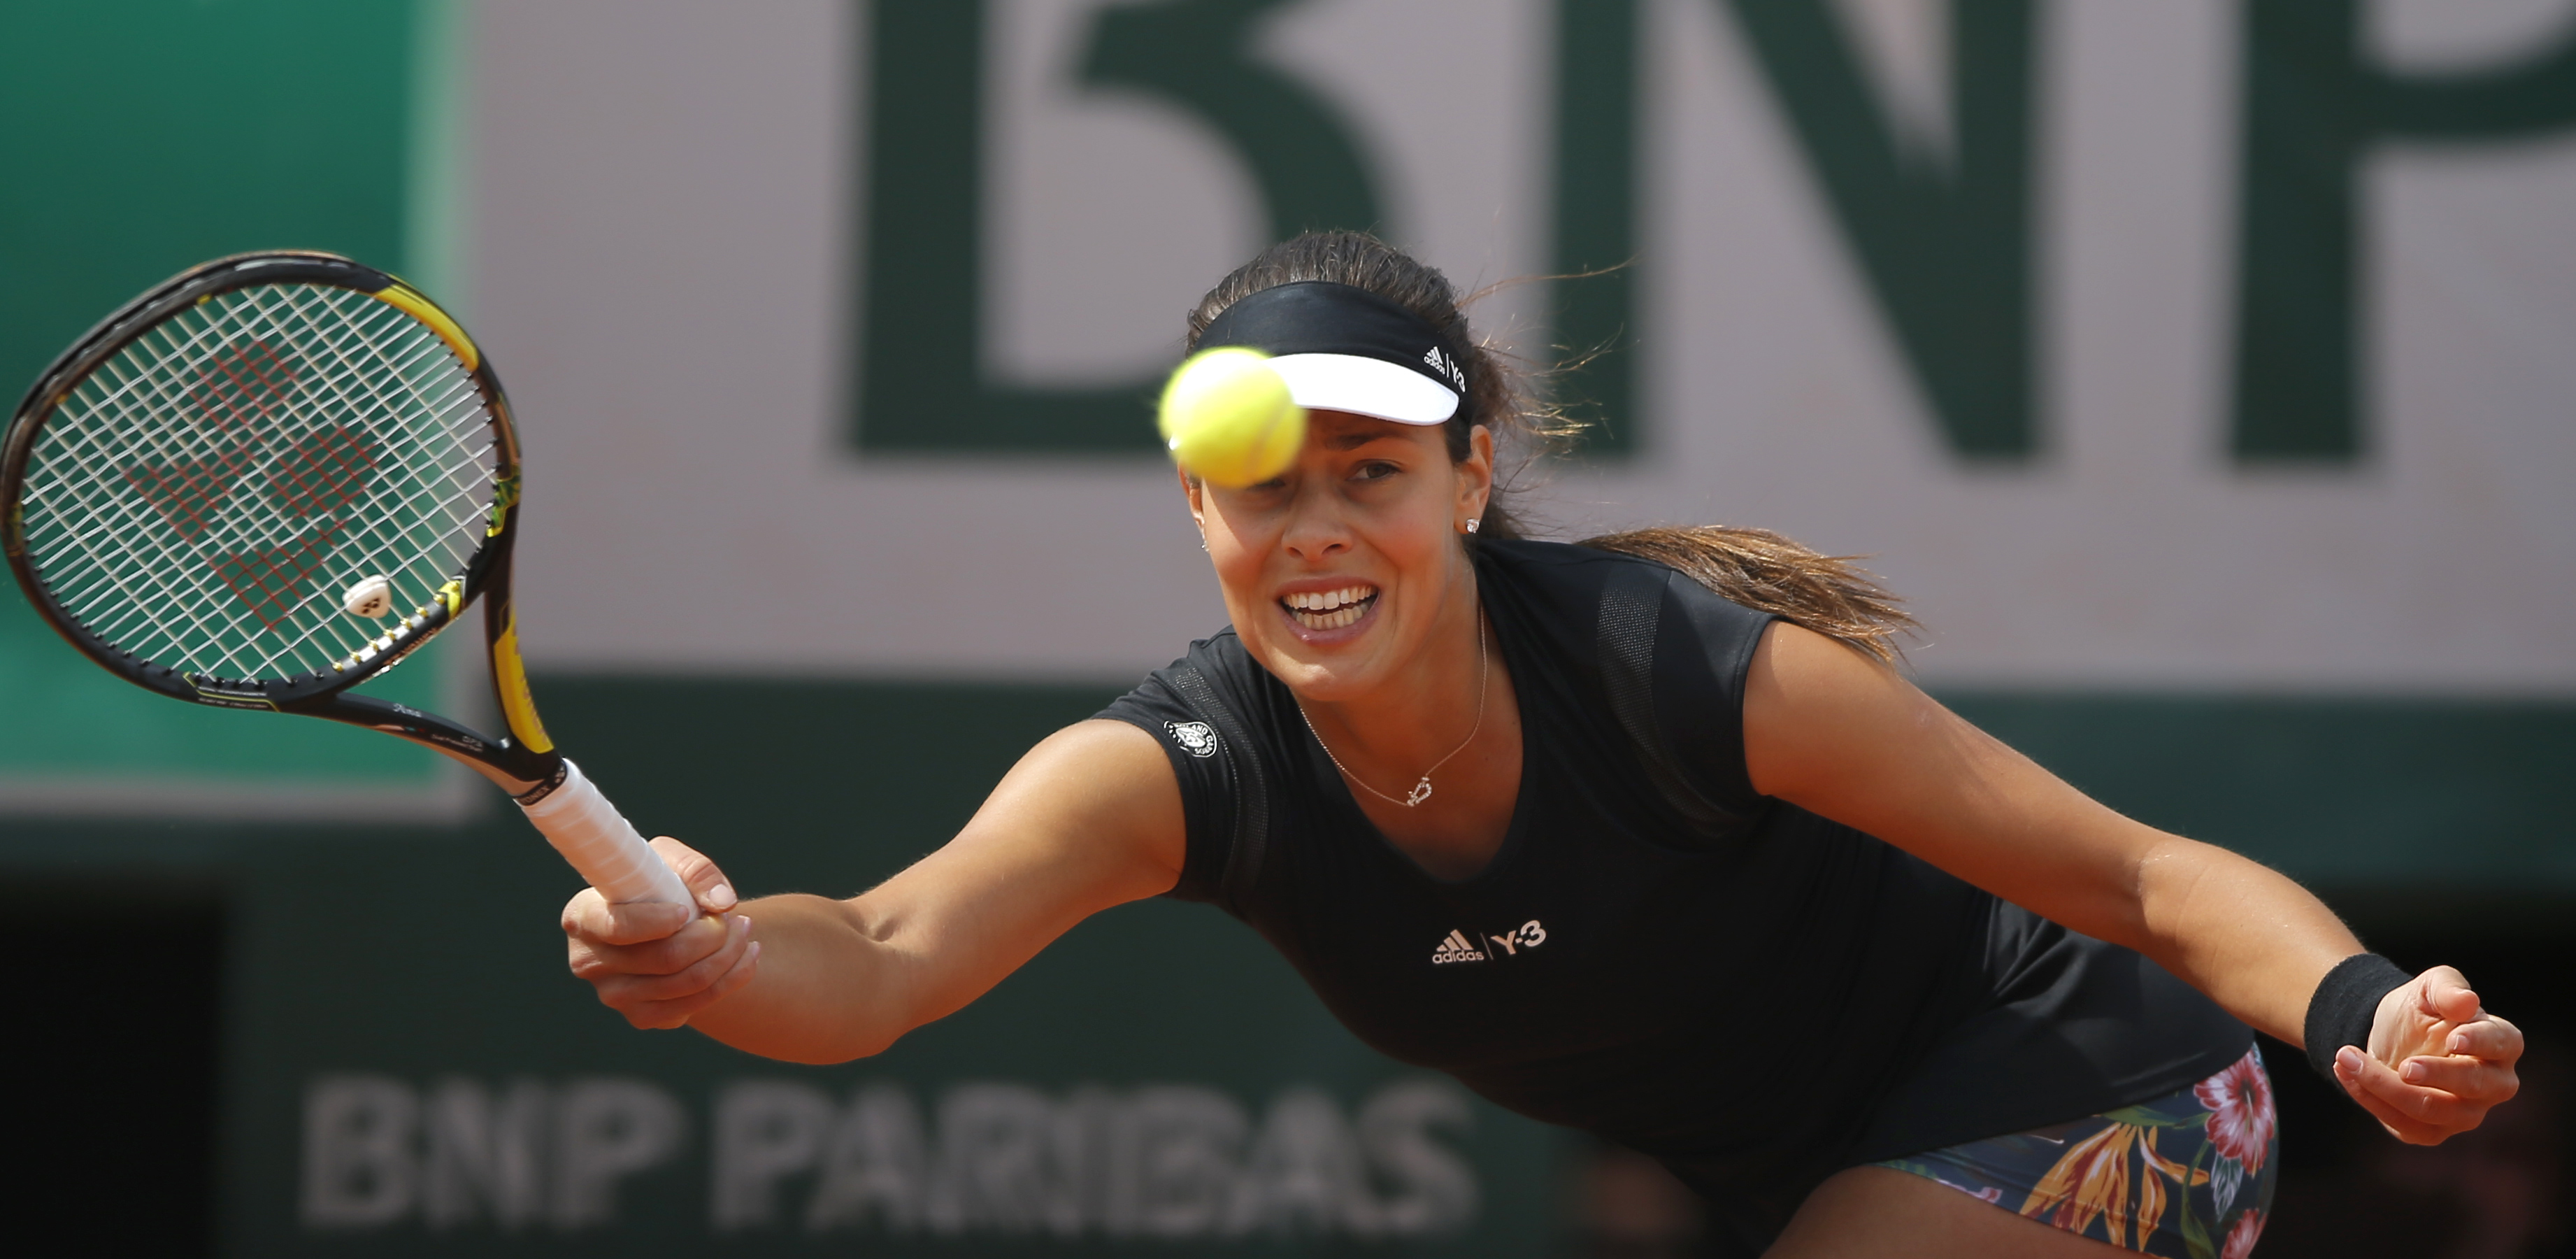 Serbia's Ana Ivanovic returns the ball to Croatia's Donna Vekic during their third round match of the French Open tennis tournament at the Roland Garros stadium, Friday, May 29, 2015 in Paris. Ivanovic won 6-0, 6-3.  (AP Photo/Francois Mori)